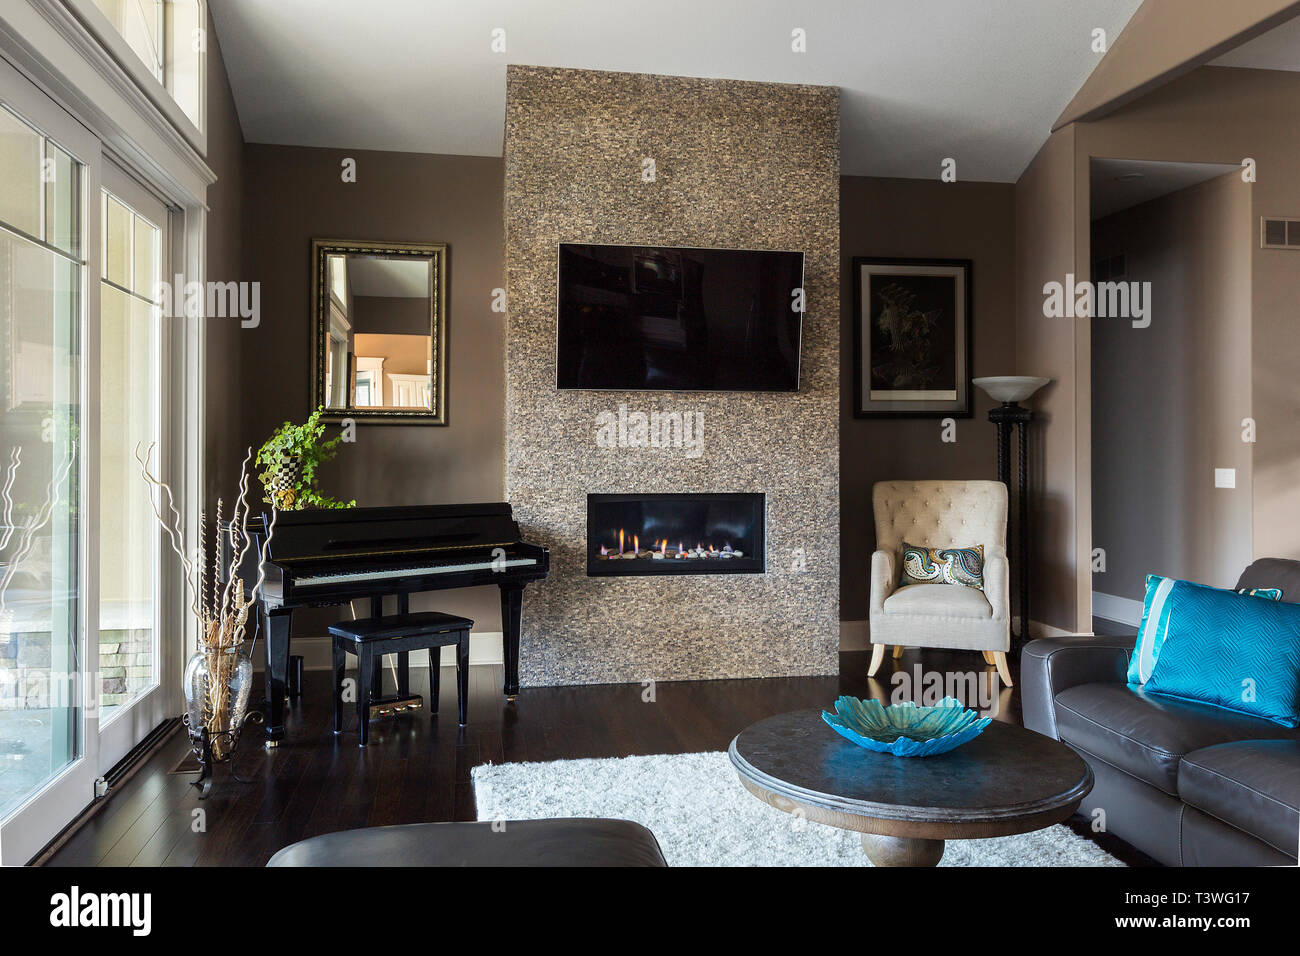 Television Sofa Piano And Fireplace In Modern Living Room Stock Photo Alamy